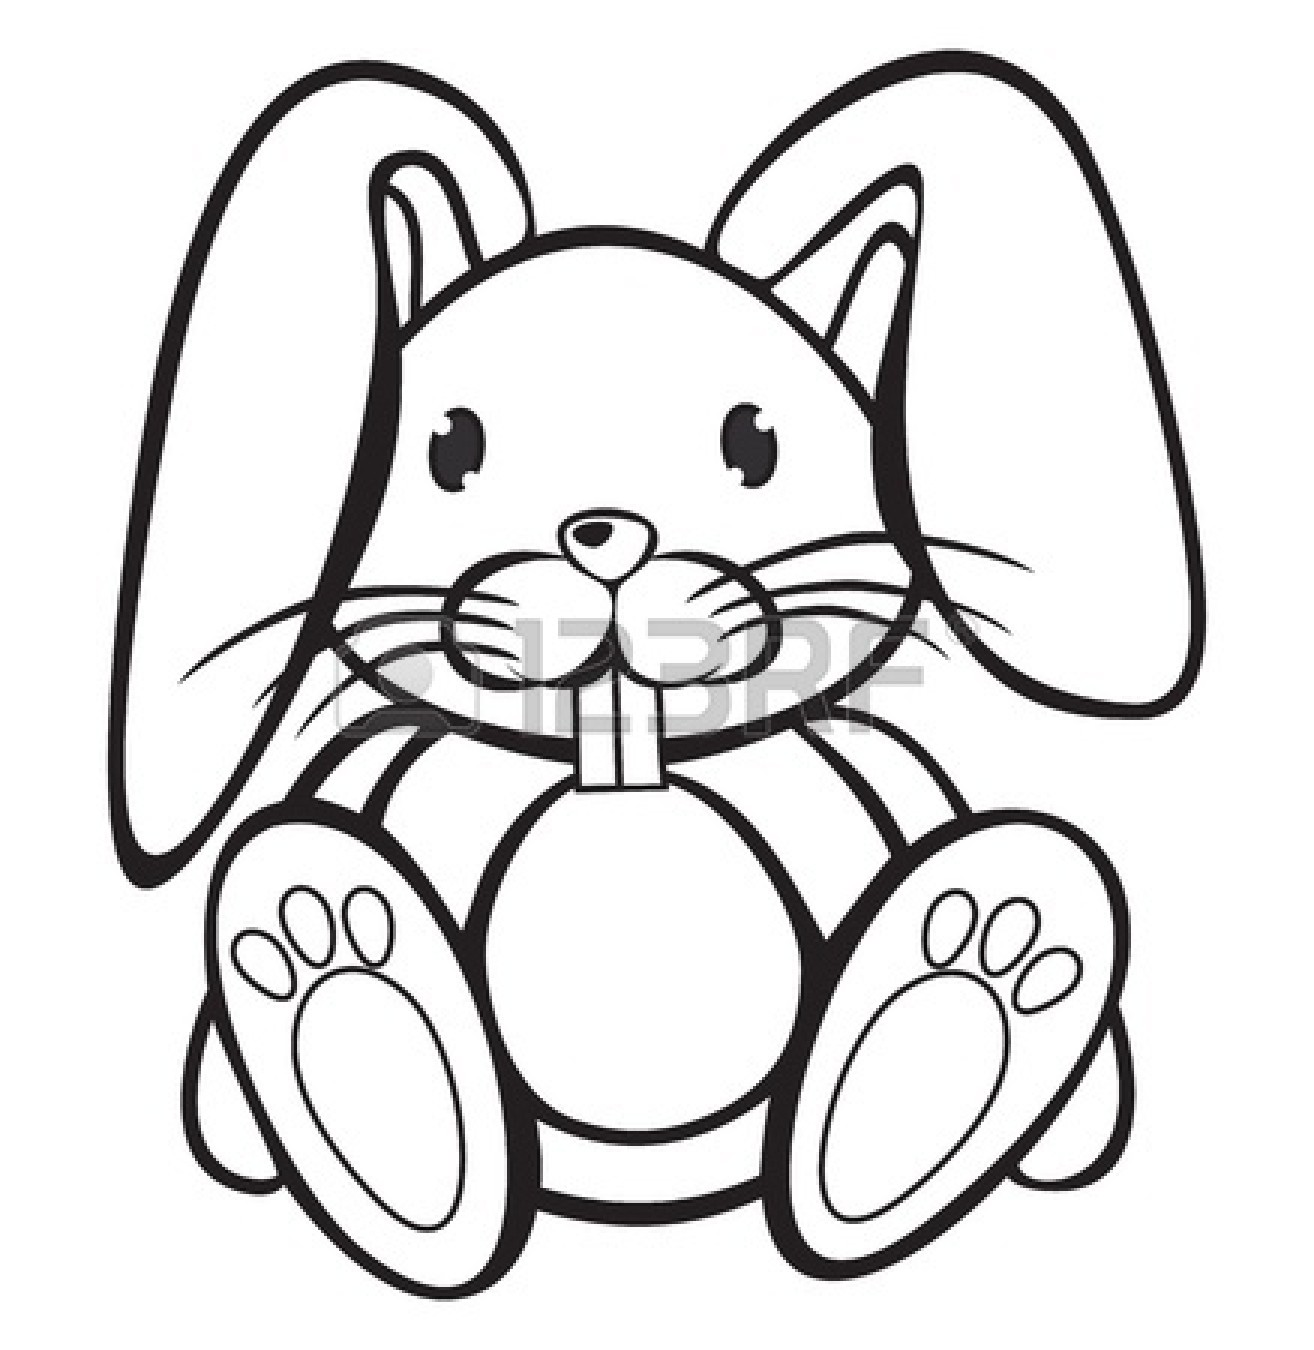 Bunny rabbit clipart black and white black and white download Rabbit Black And White Clipart | Free download best Rabbit Black And ... black and white download